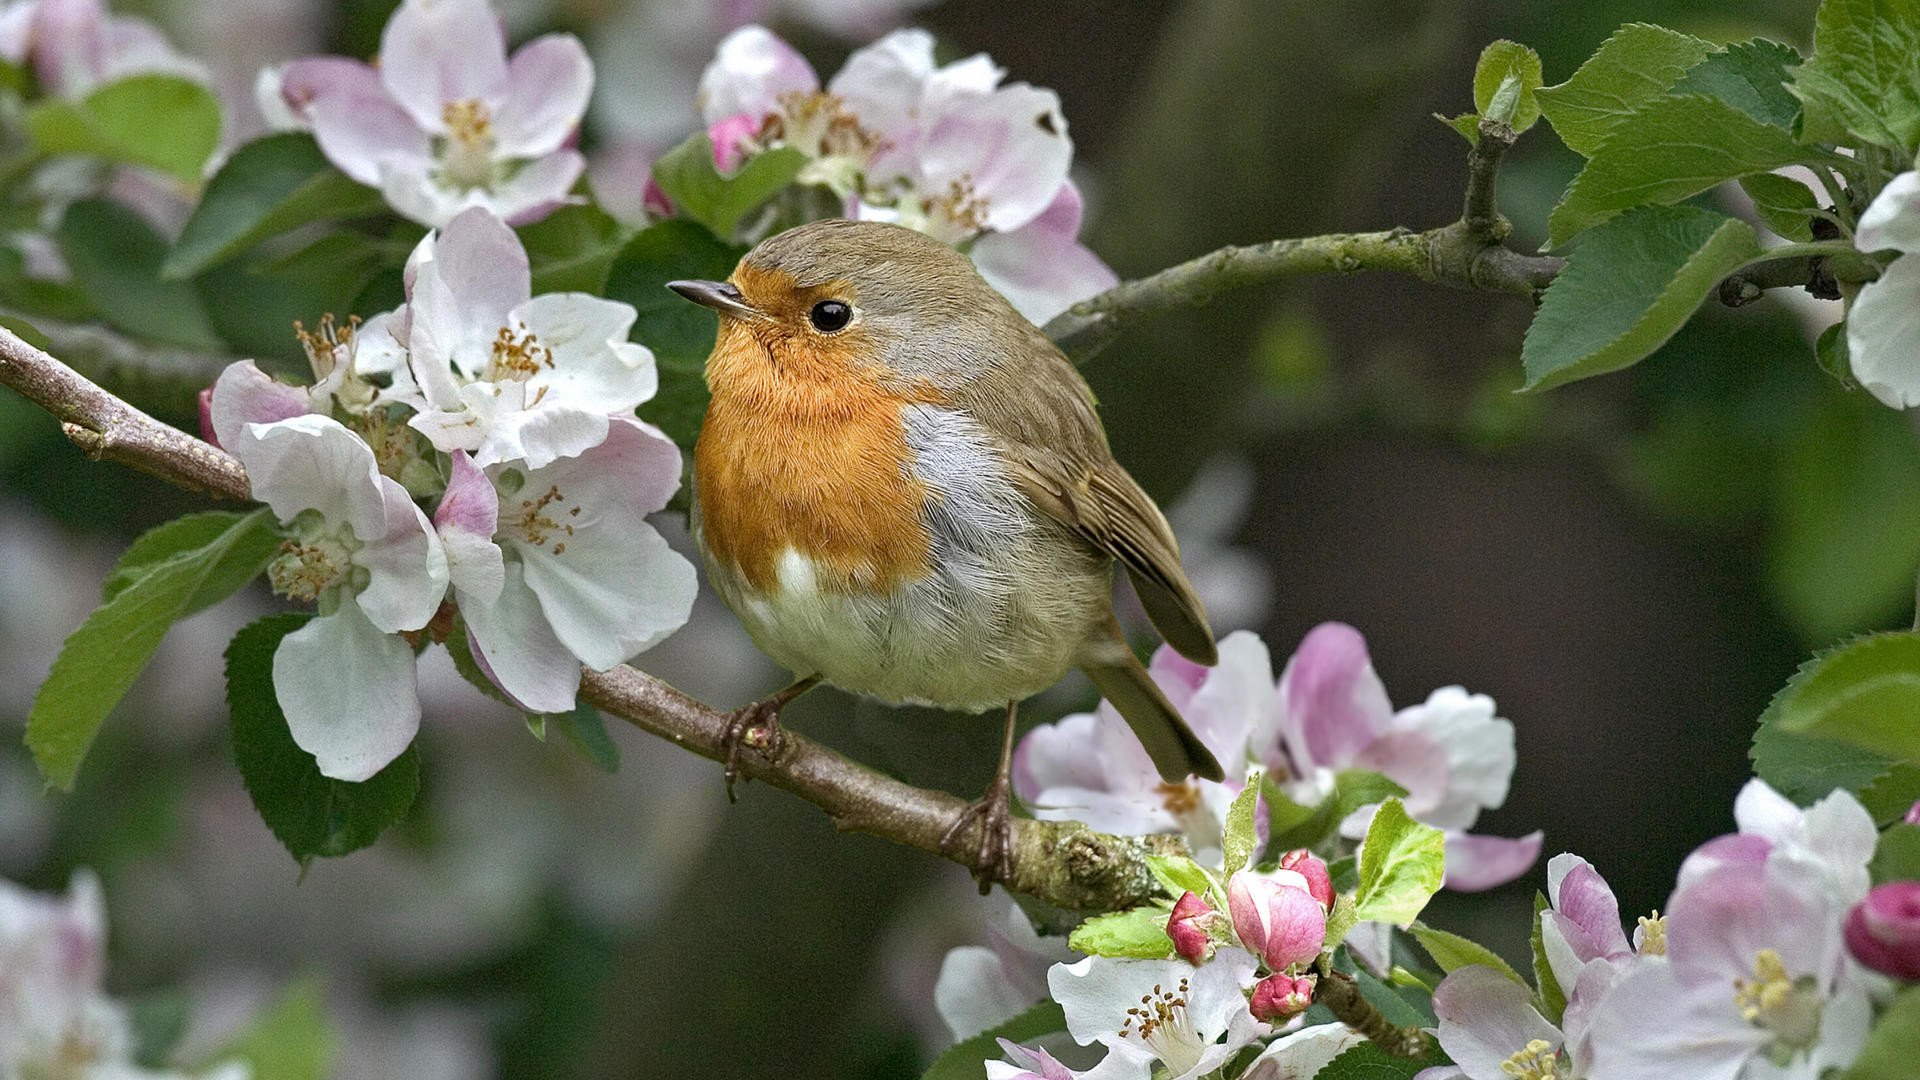 1920x1080 Spring birds and flowers wallpaper - photo#15